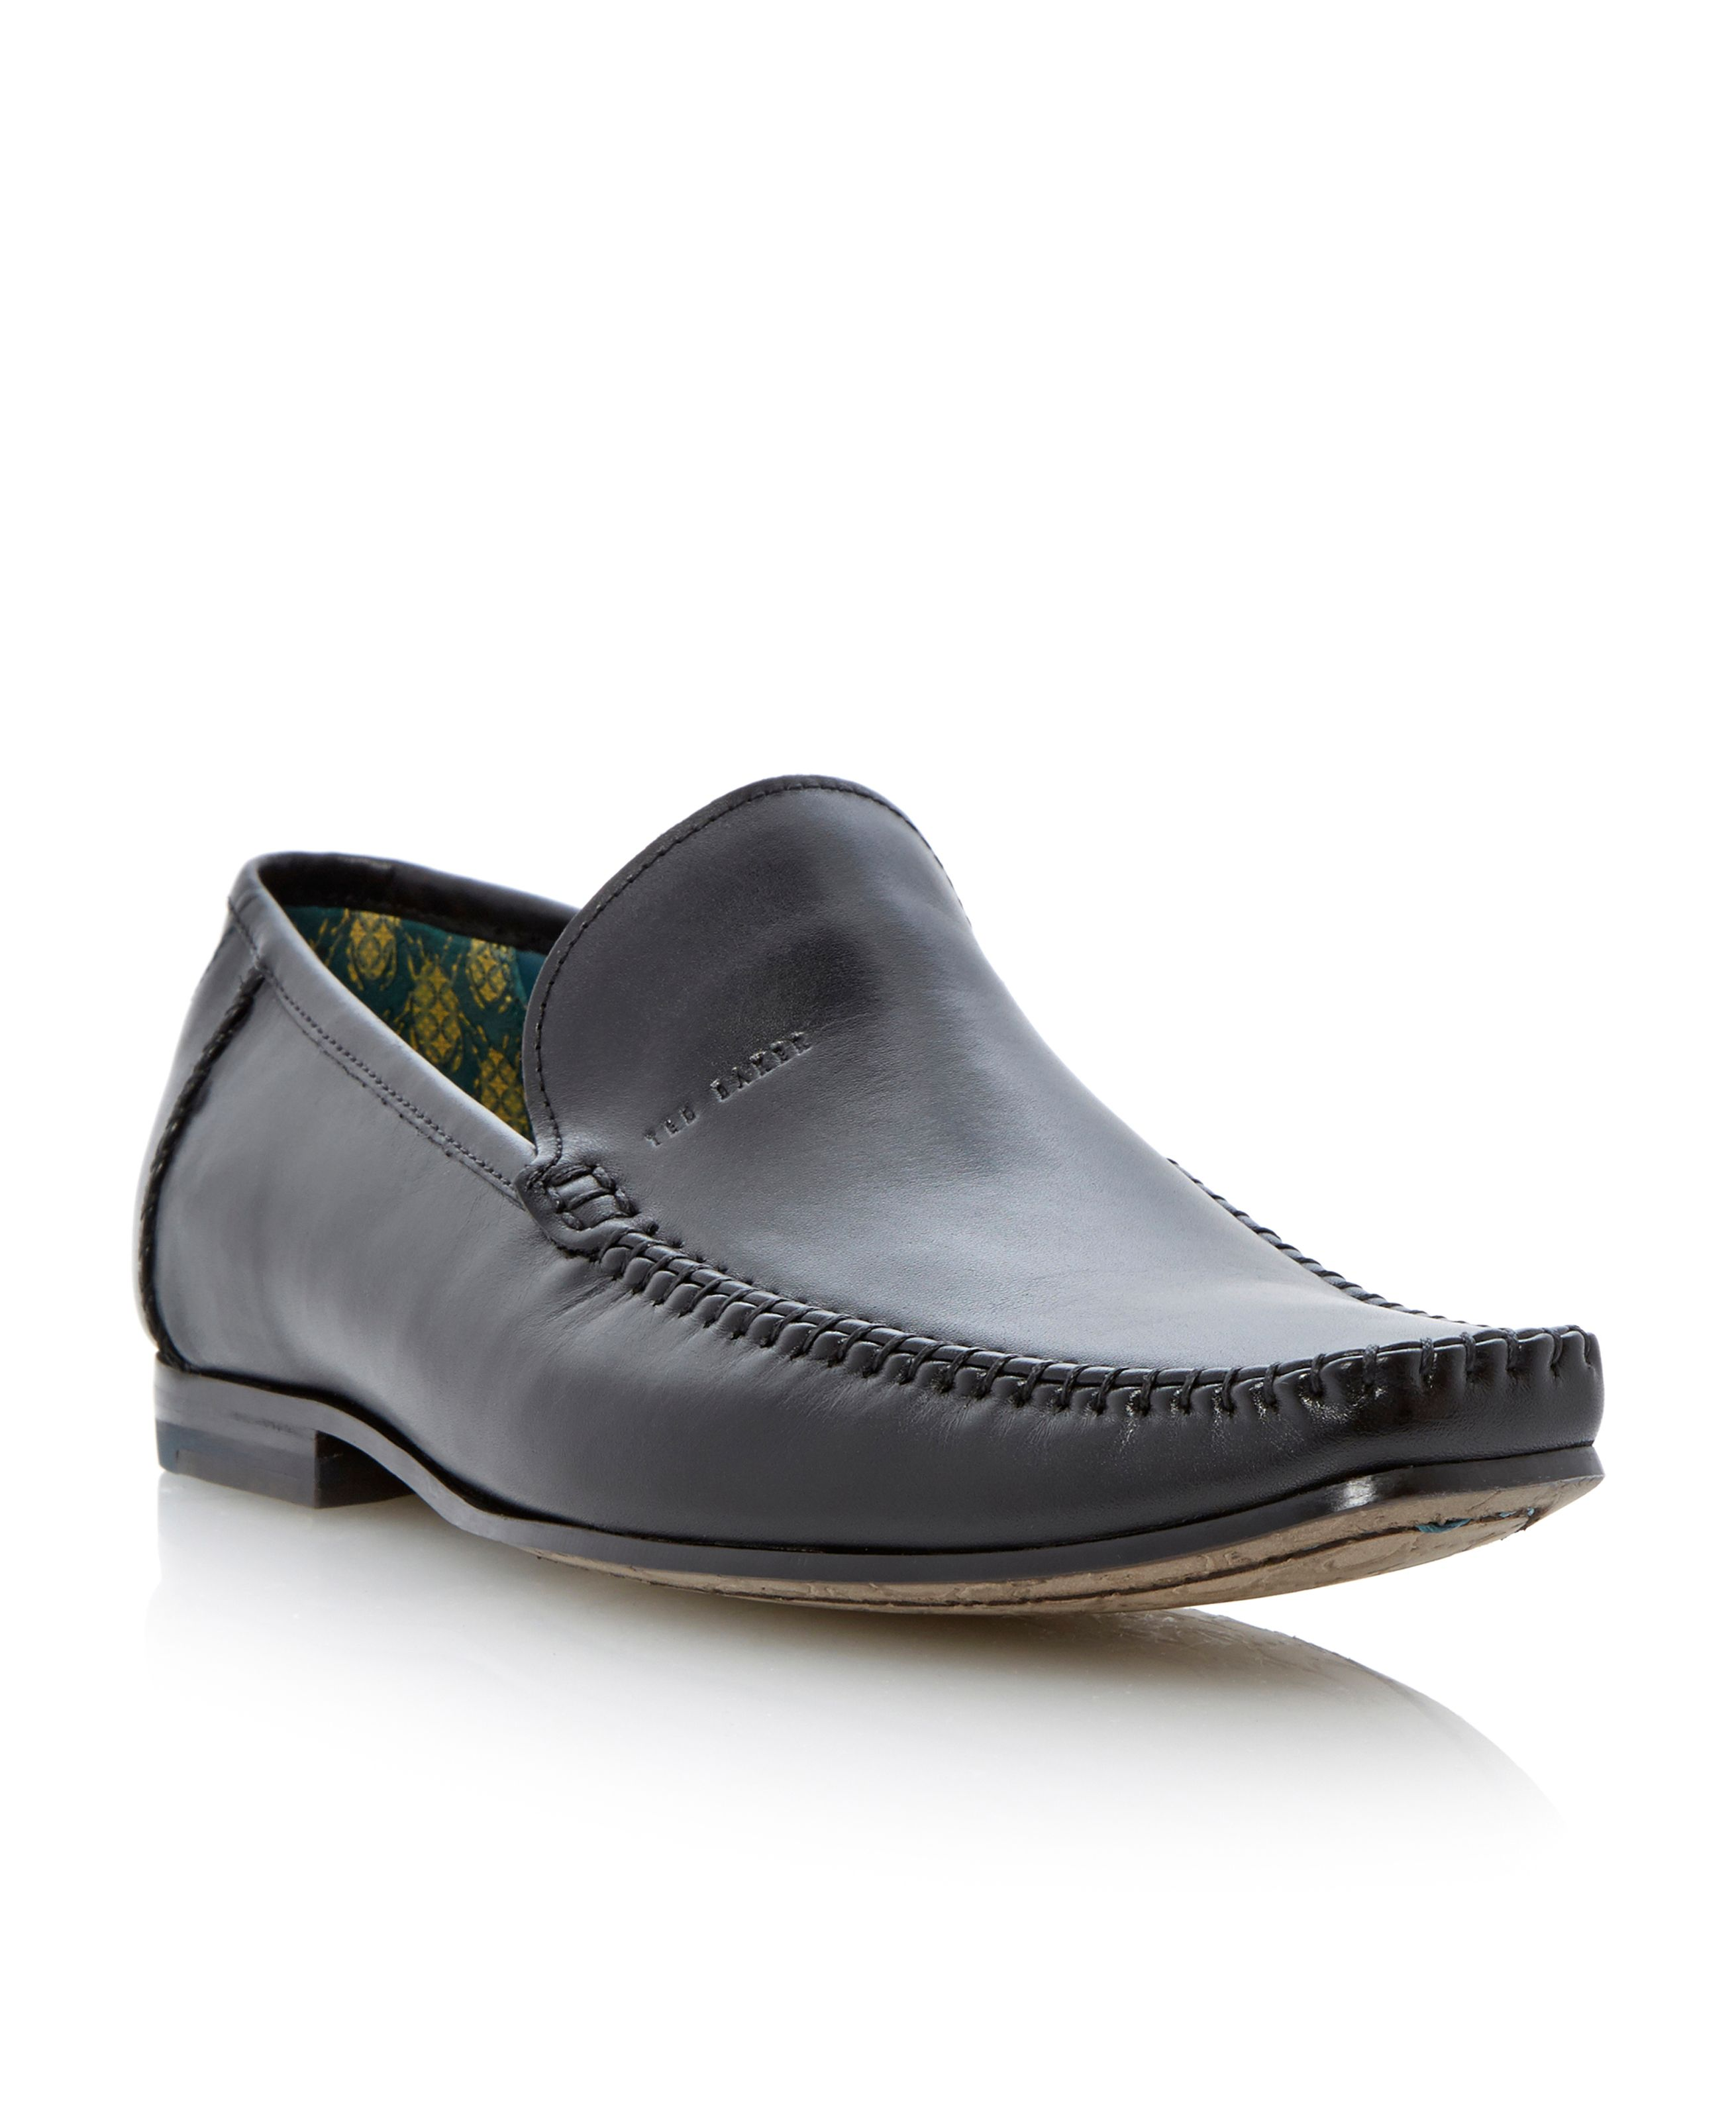 Bly 6 slip on leather moccasin